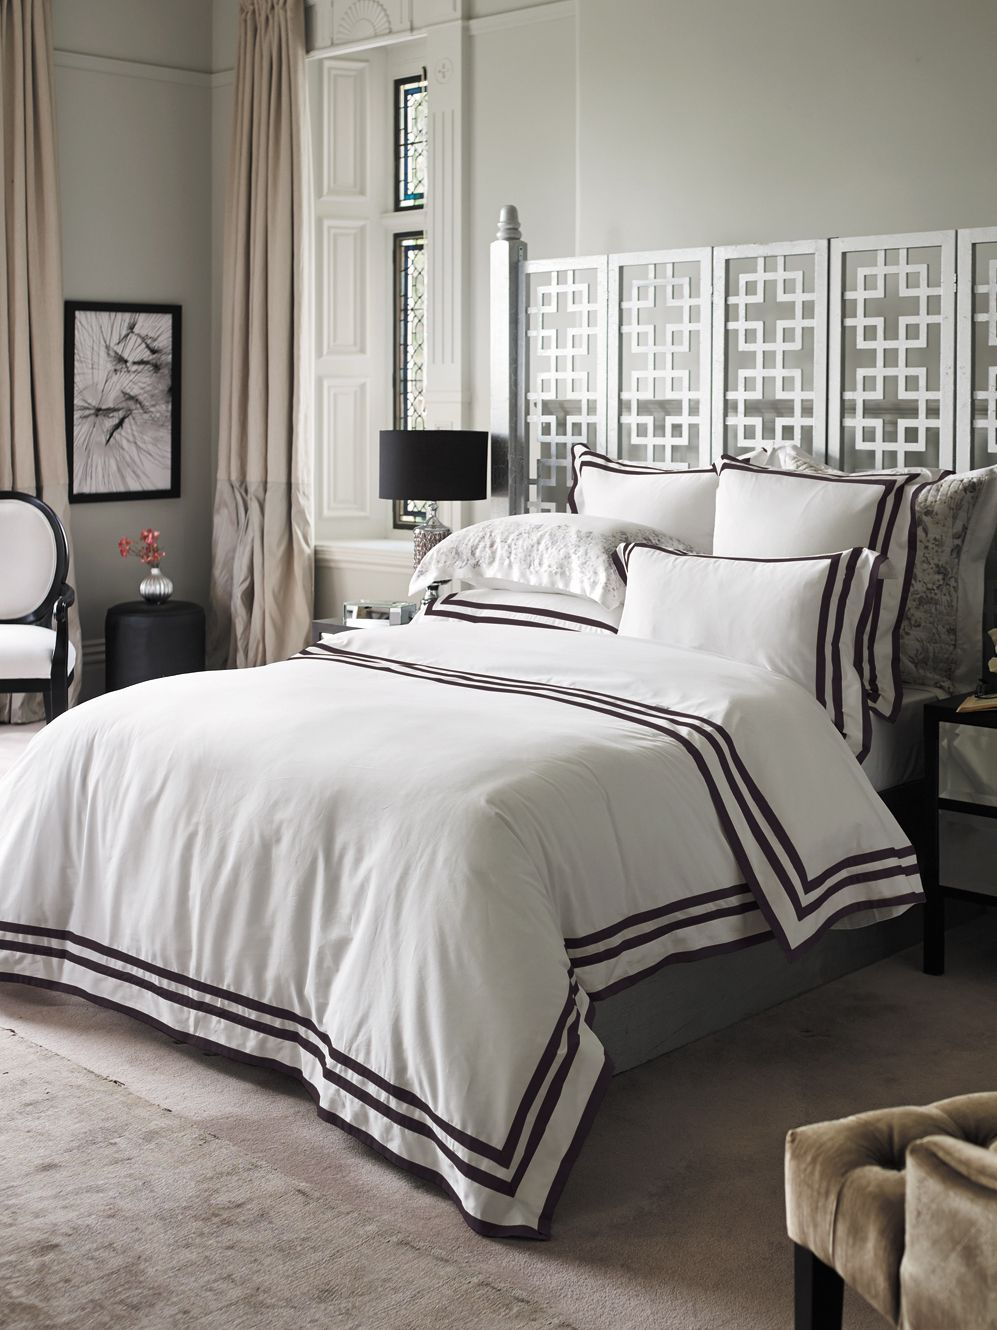 Holroyd ebony single fitted sheet timeless look